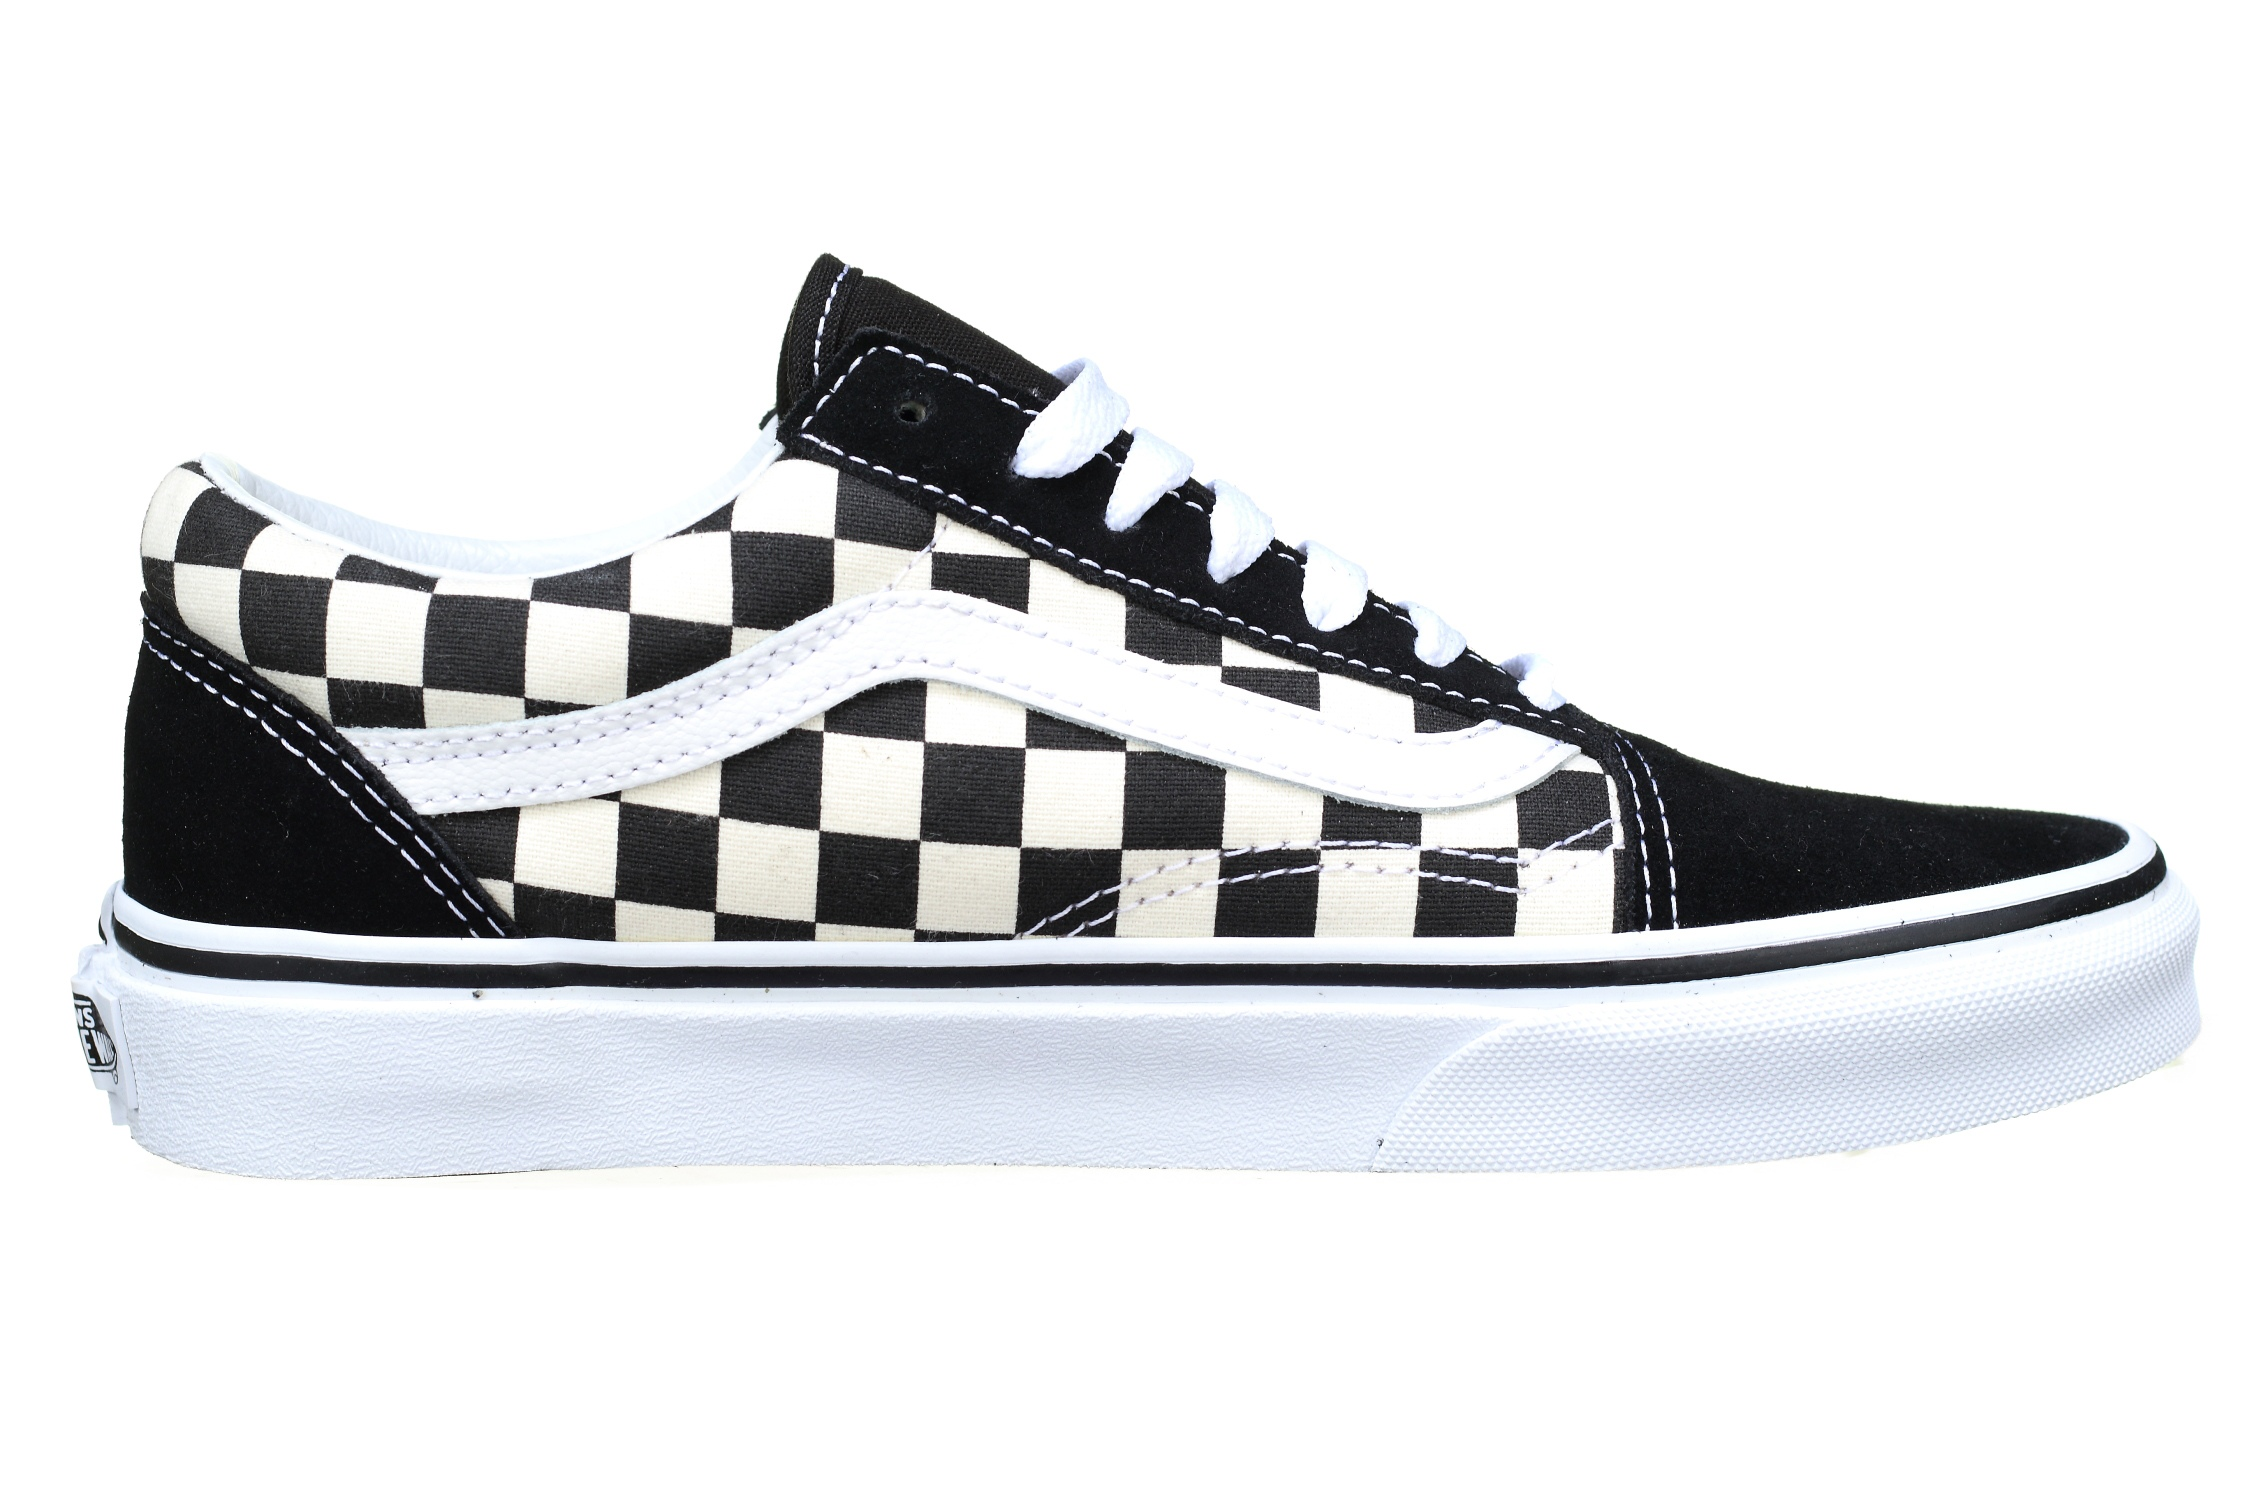 http://www.leadermode.com/155723/vans-old-skool-primary-check-vn0a38g1p0s-blk-white.jpg